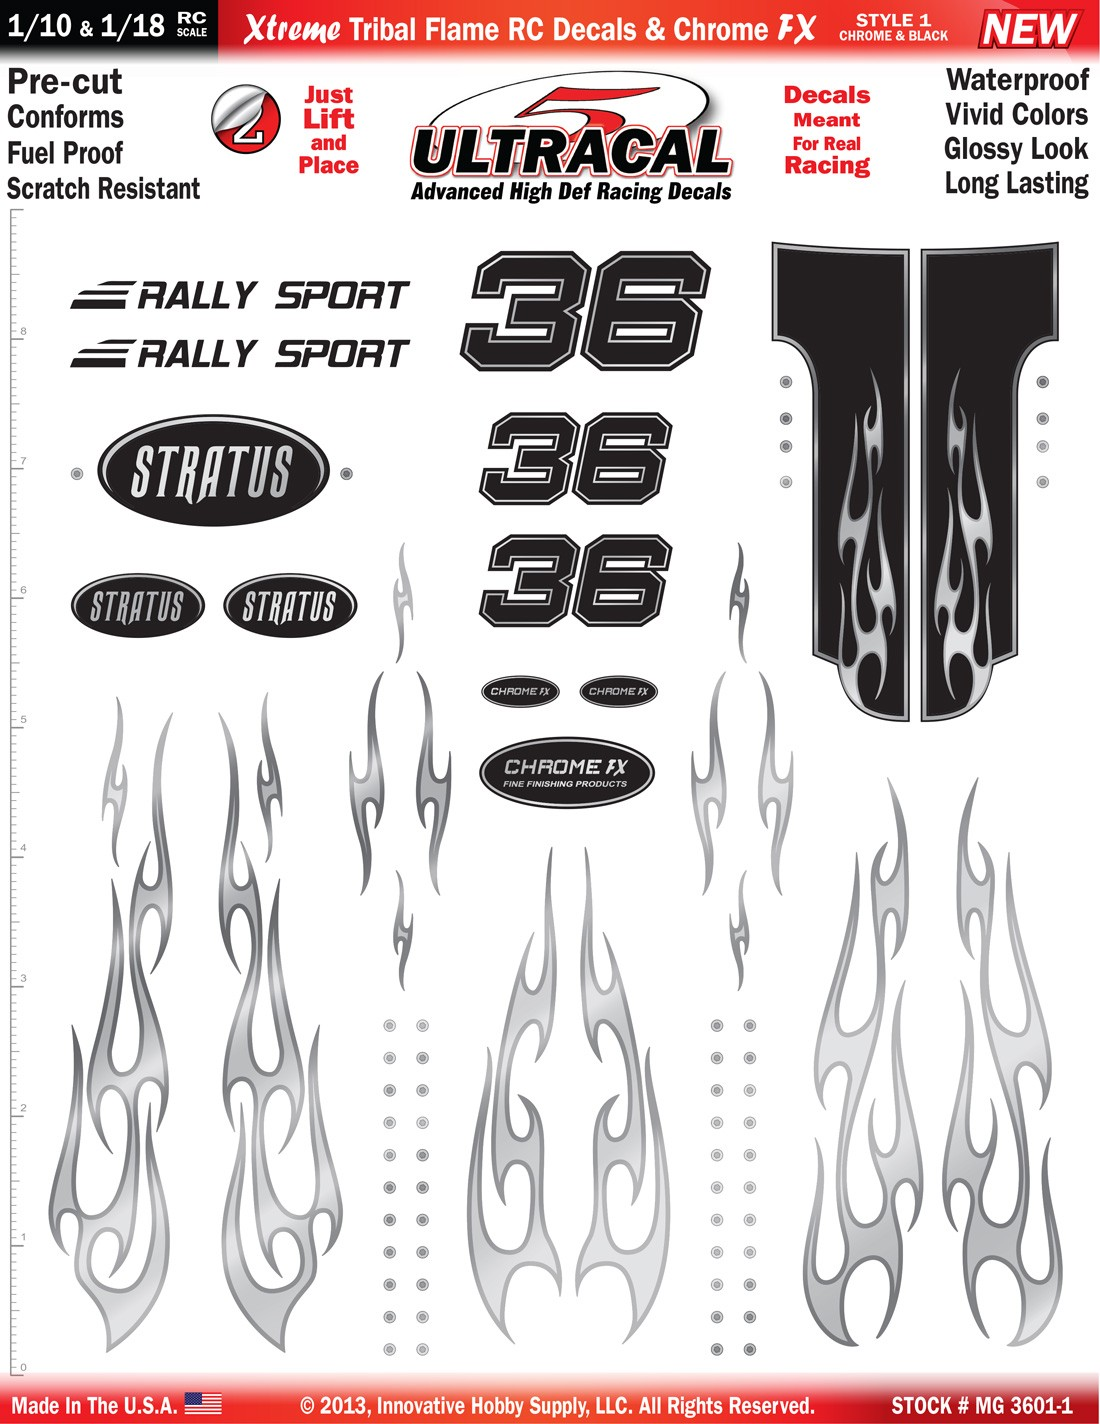 MG 3601-1 Ultracal Chrome & Black Xtreme Tribal Flame RC Decals & Chrome FX for 1:10 and 1:18 Scale